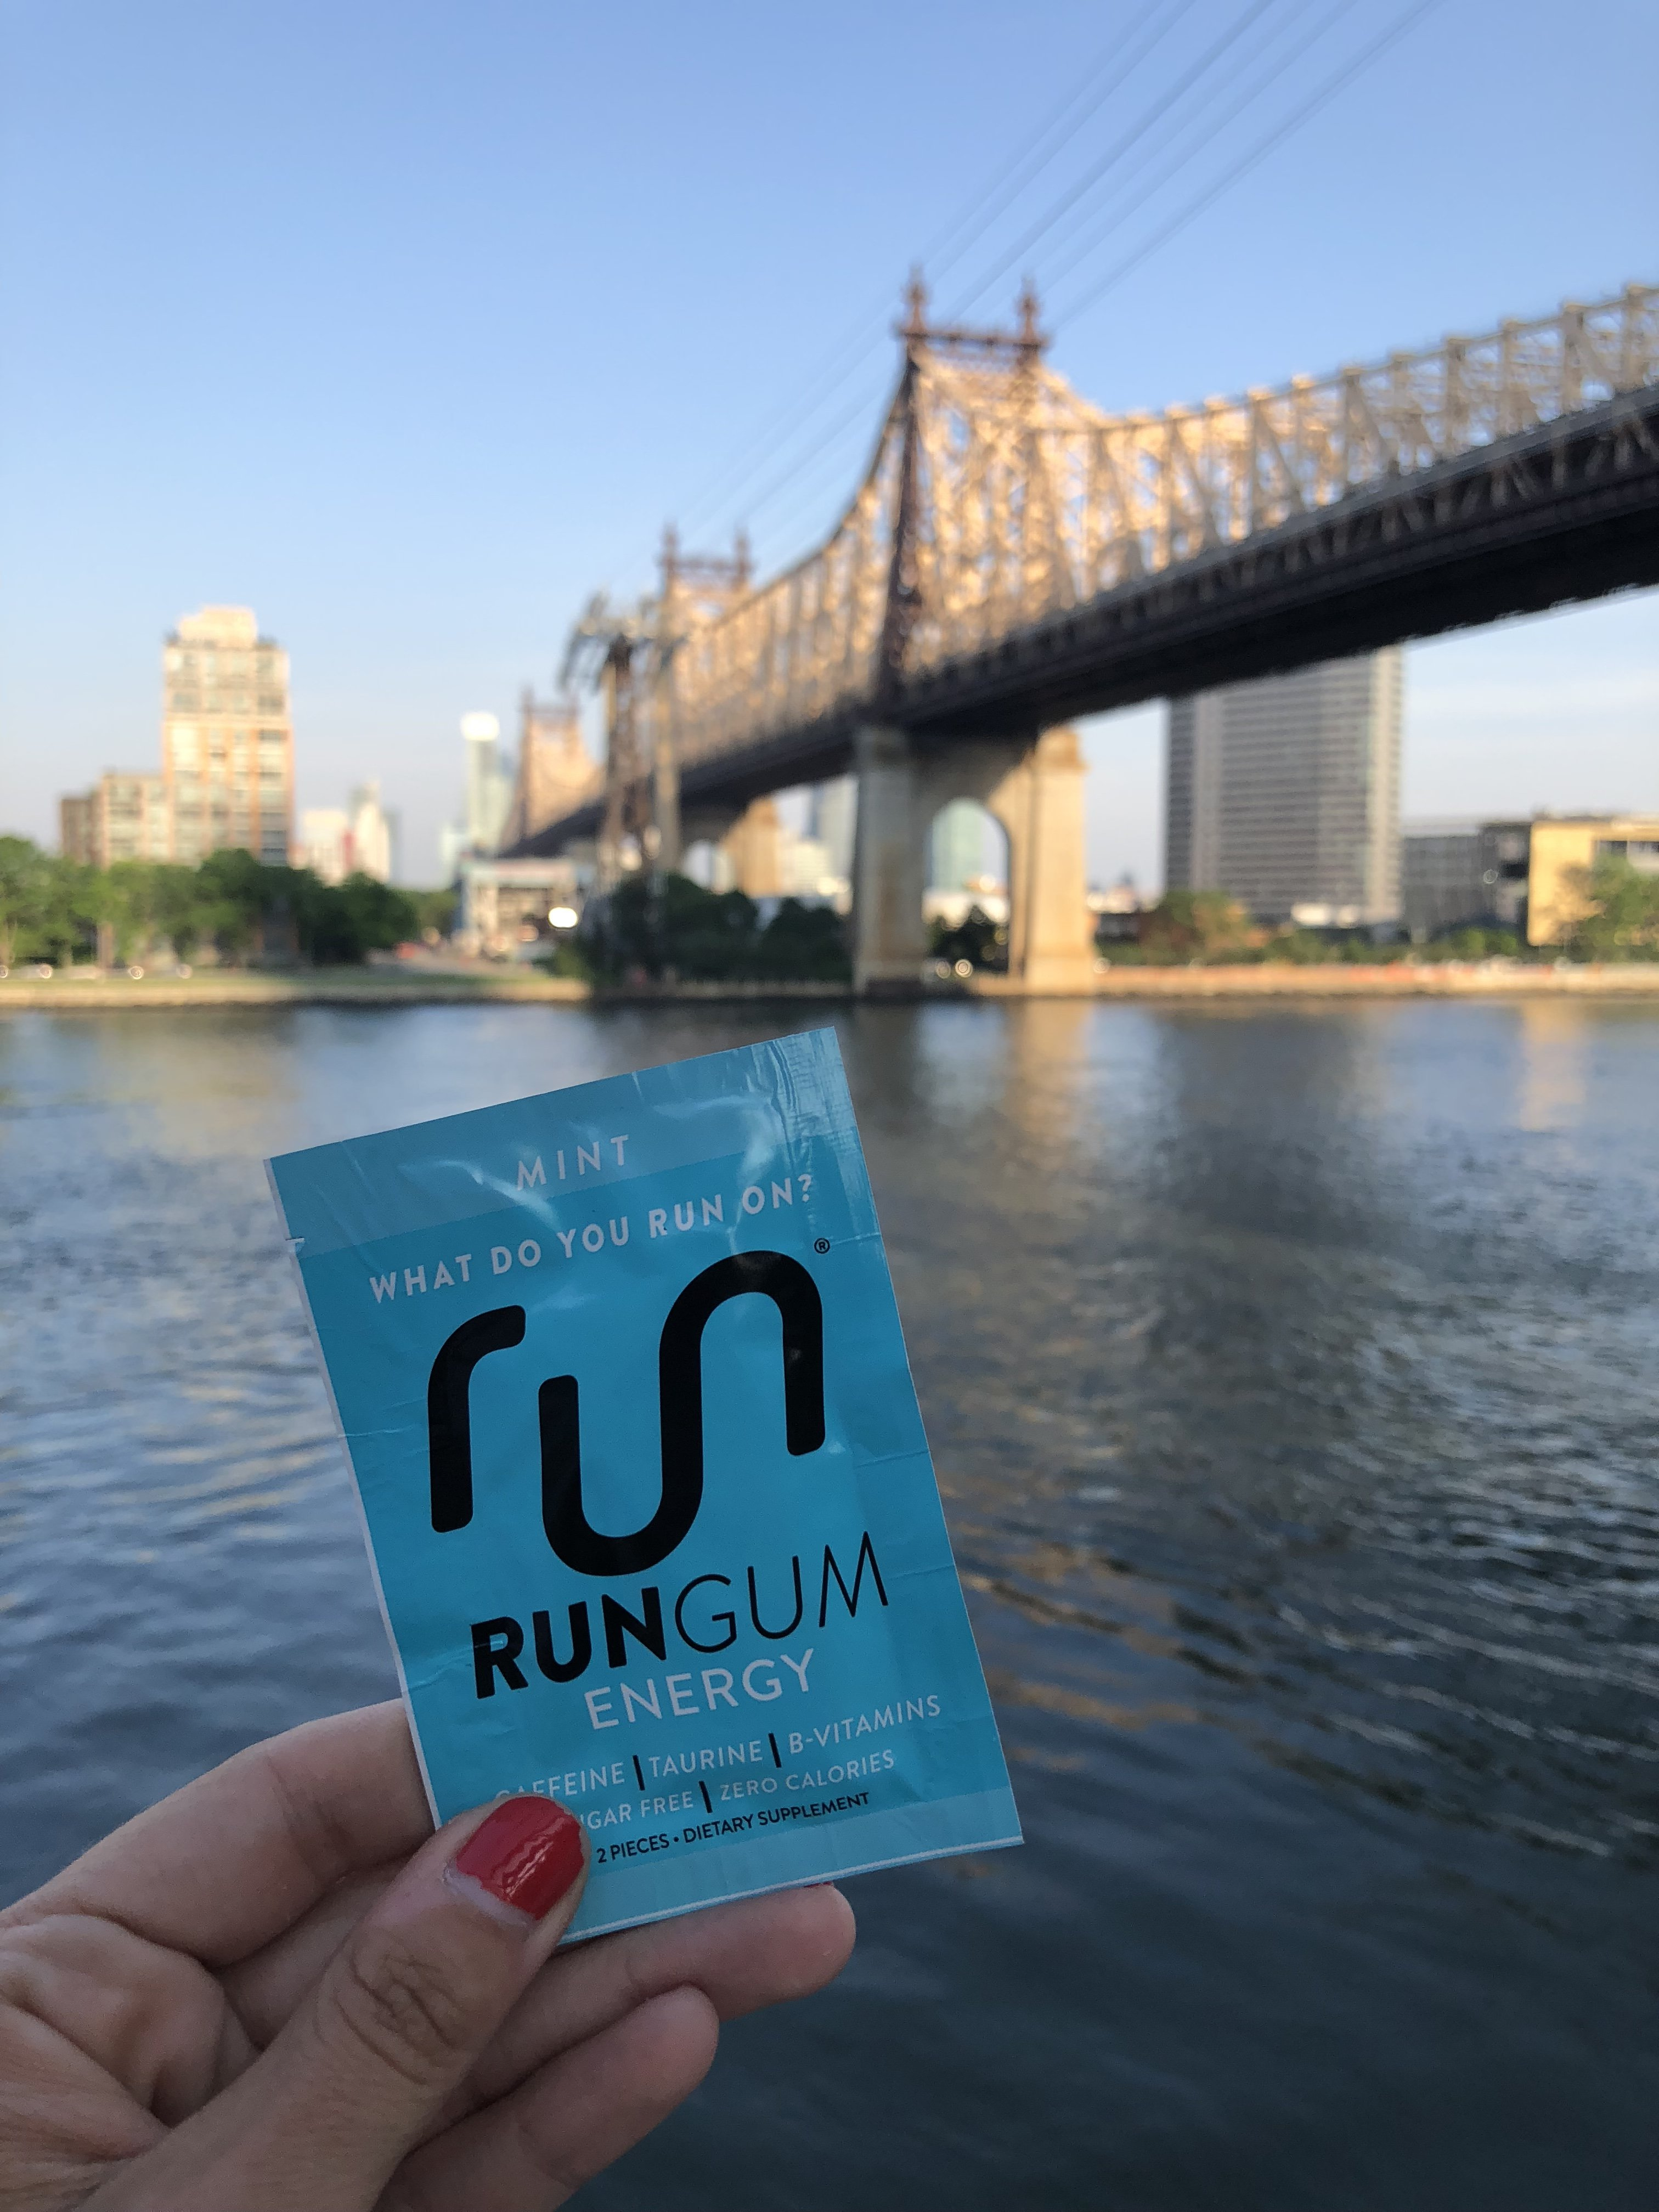 I Tried Powering My Runs With Caffeinated Gum—Check Out My